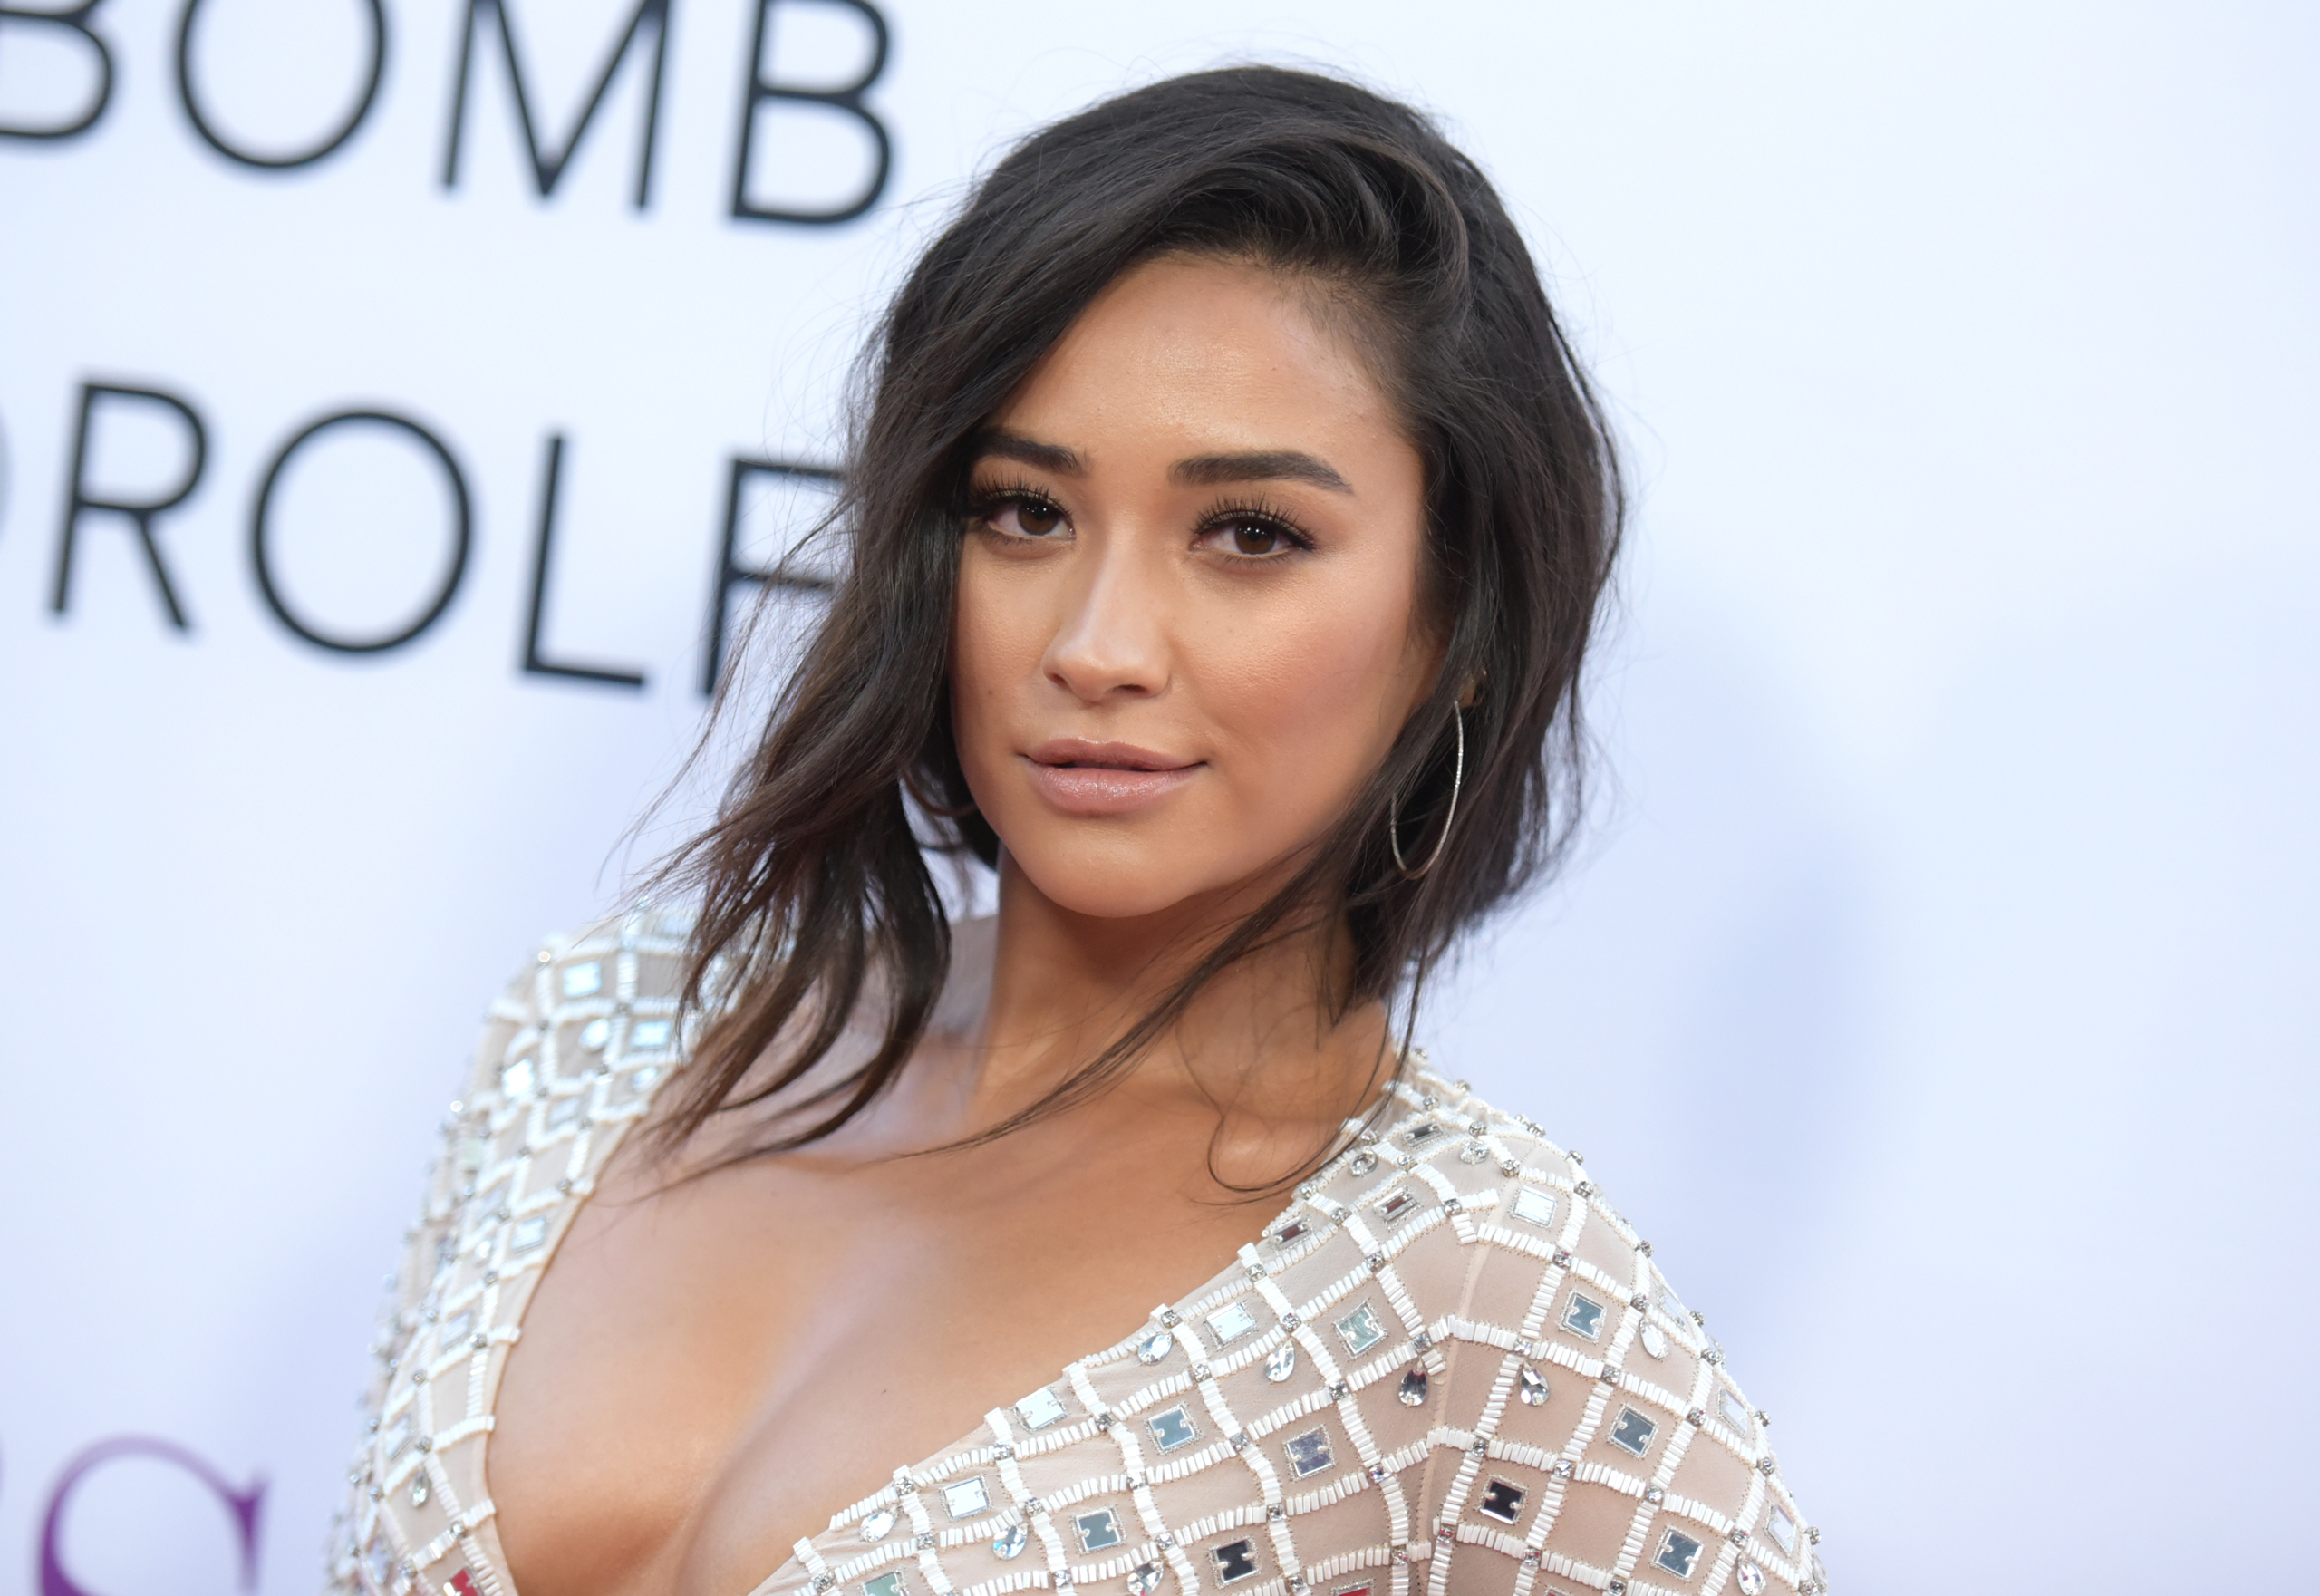 Shay Mitchell arrives at the premiere of  Mother's Day  at the TCL Chinese Theatre in Los Angeles on Apr. 13, 2016.